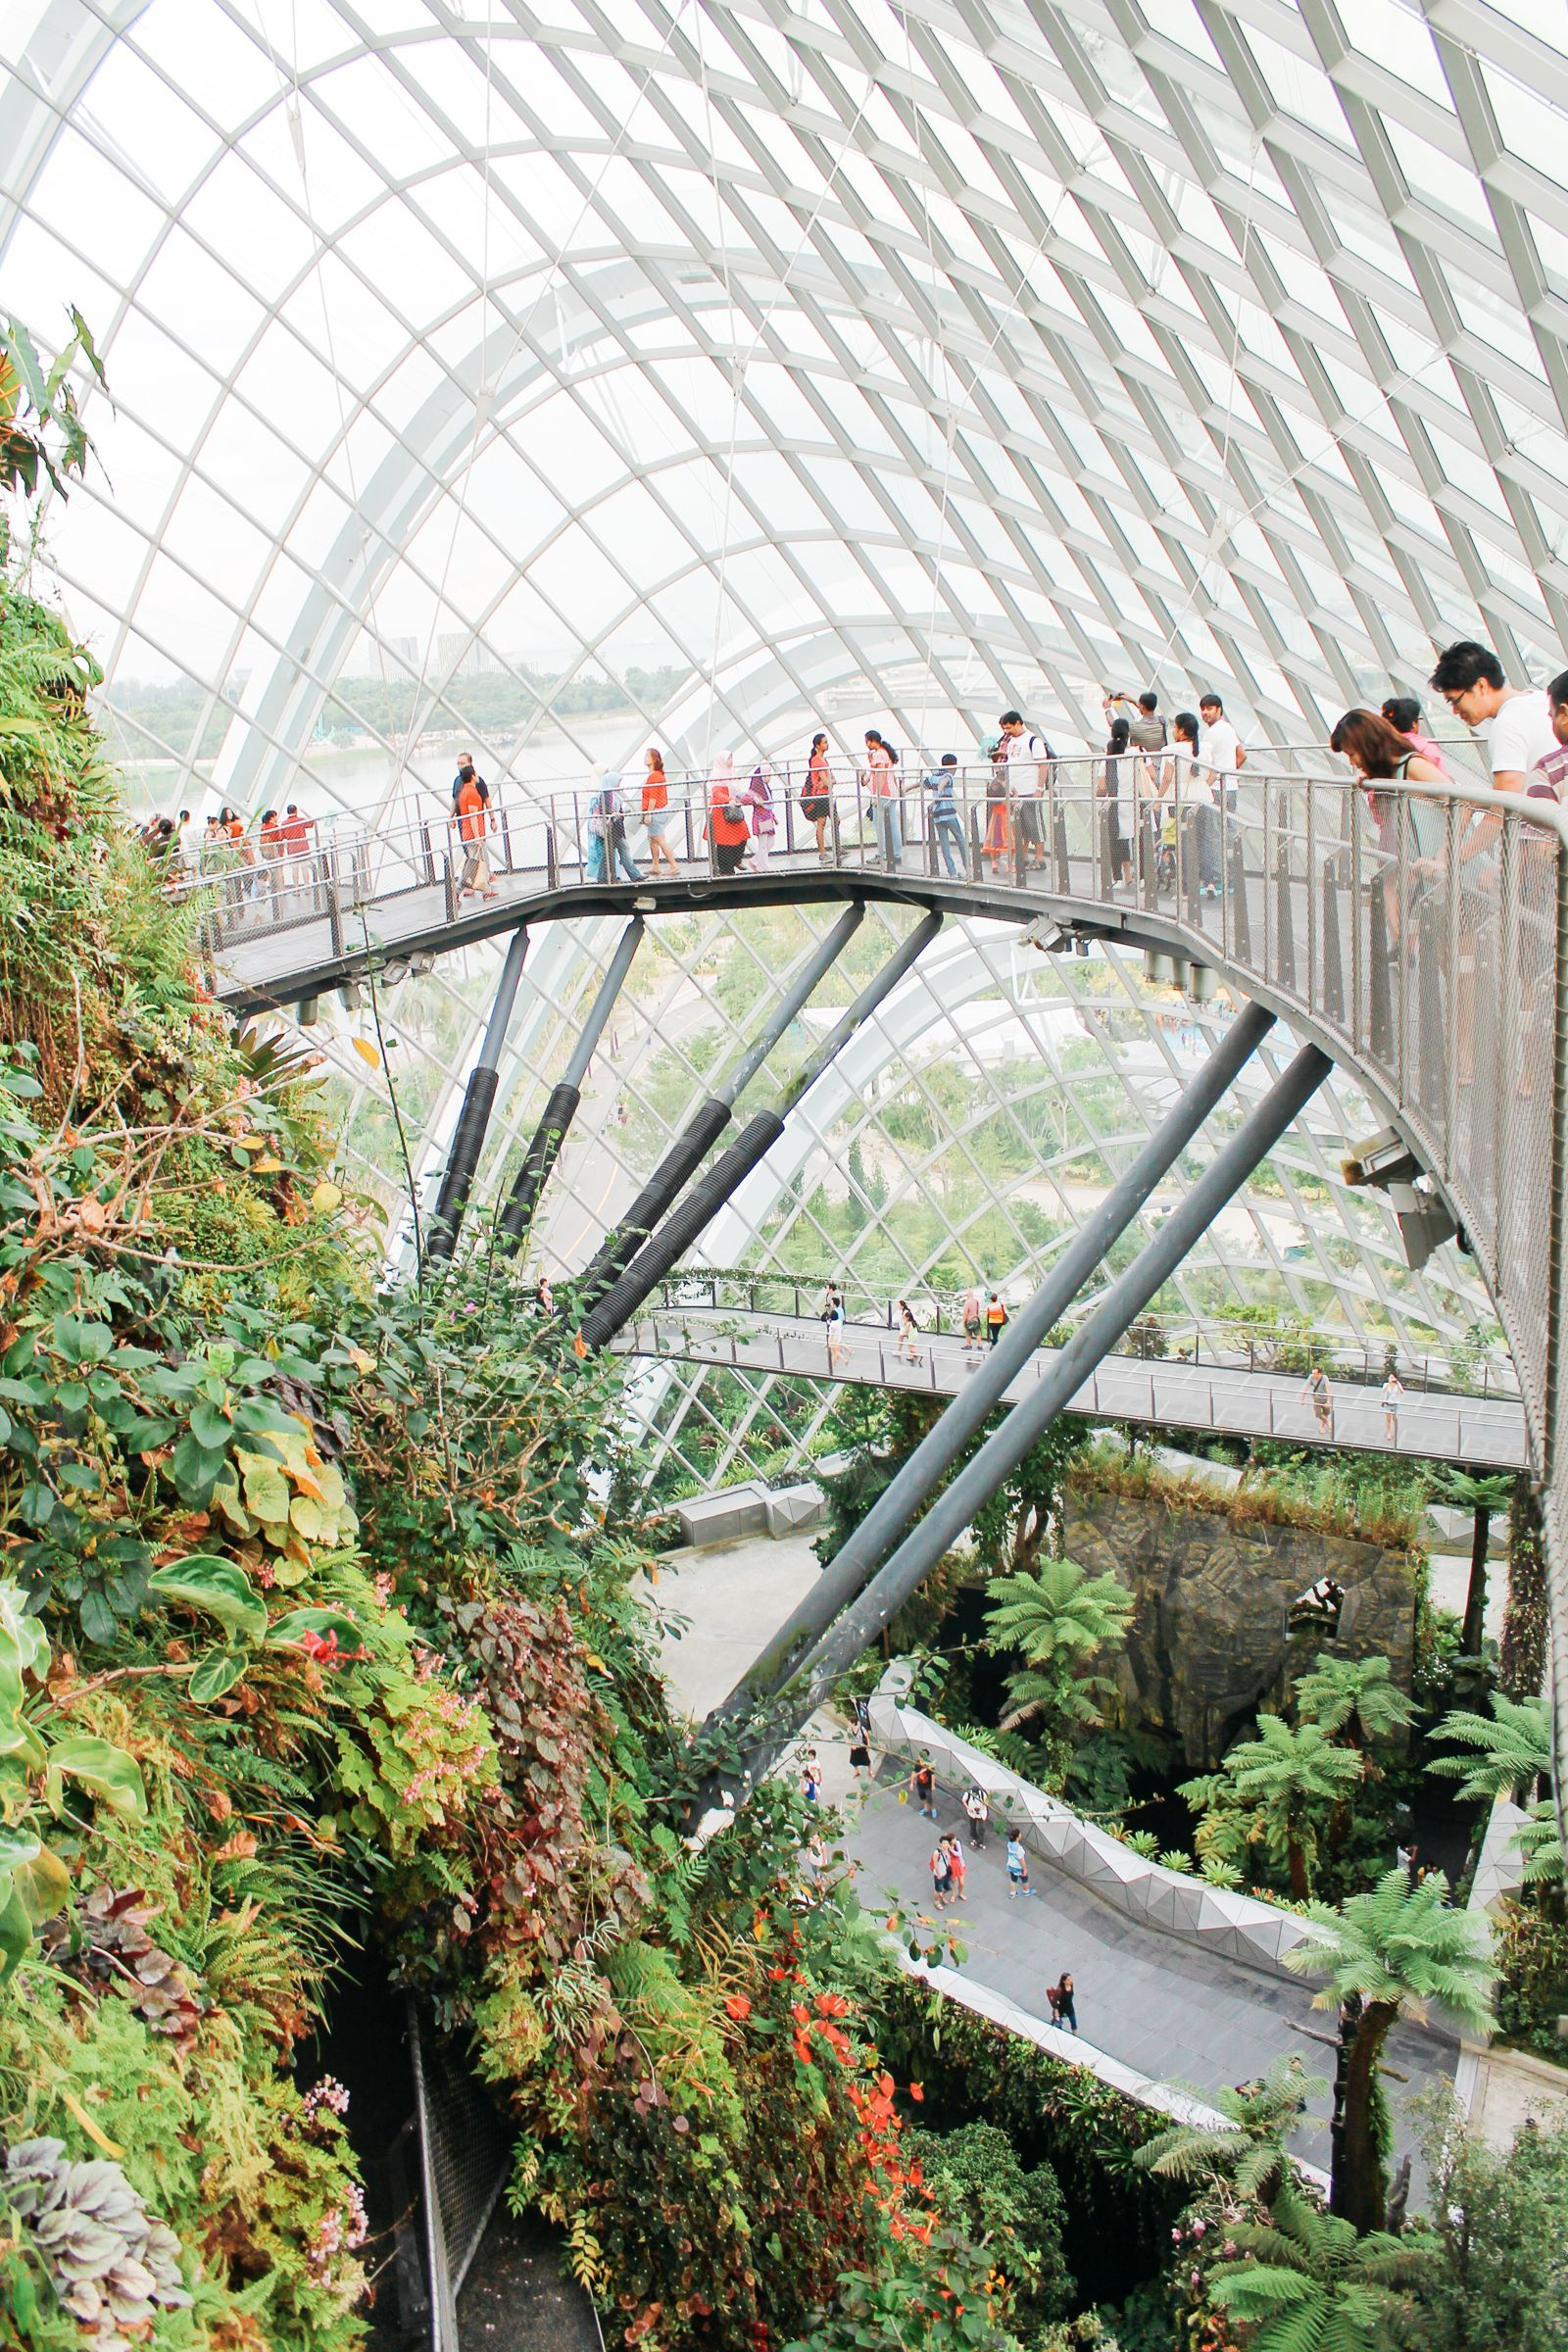 15 things you need to know about visiting singapore singapore tripvisit singaporesingapore architecturegardens by the bayforest - Garden By The Bay Food